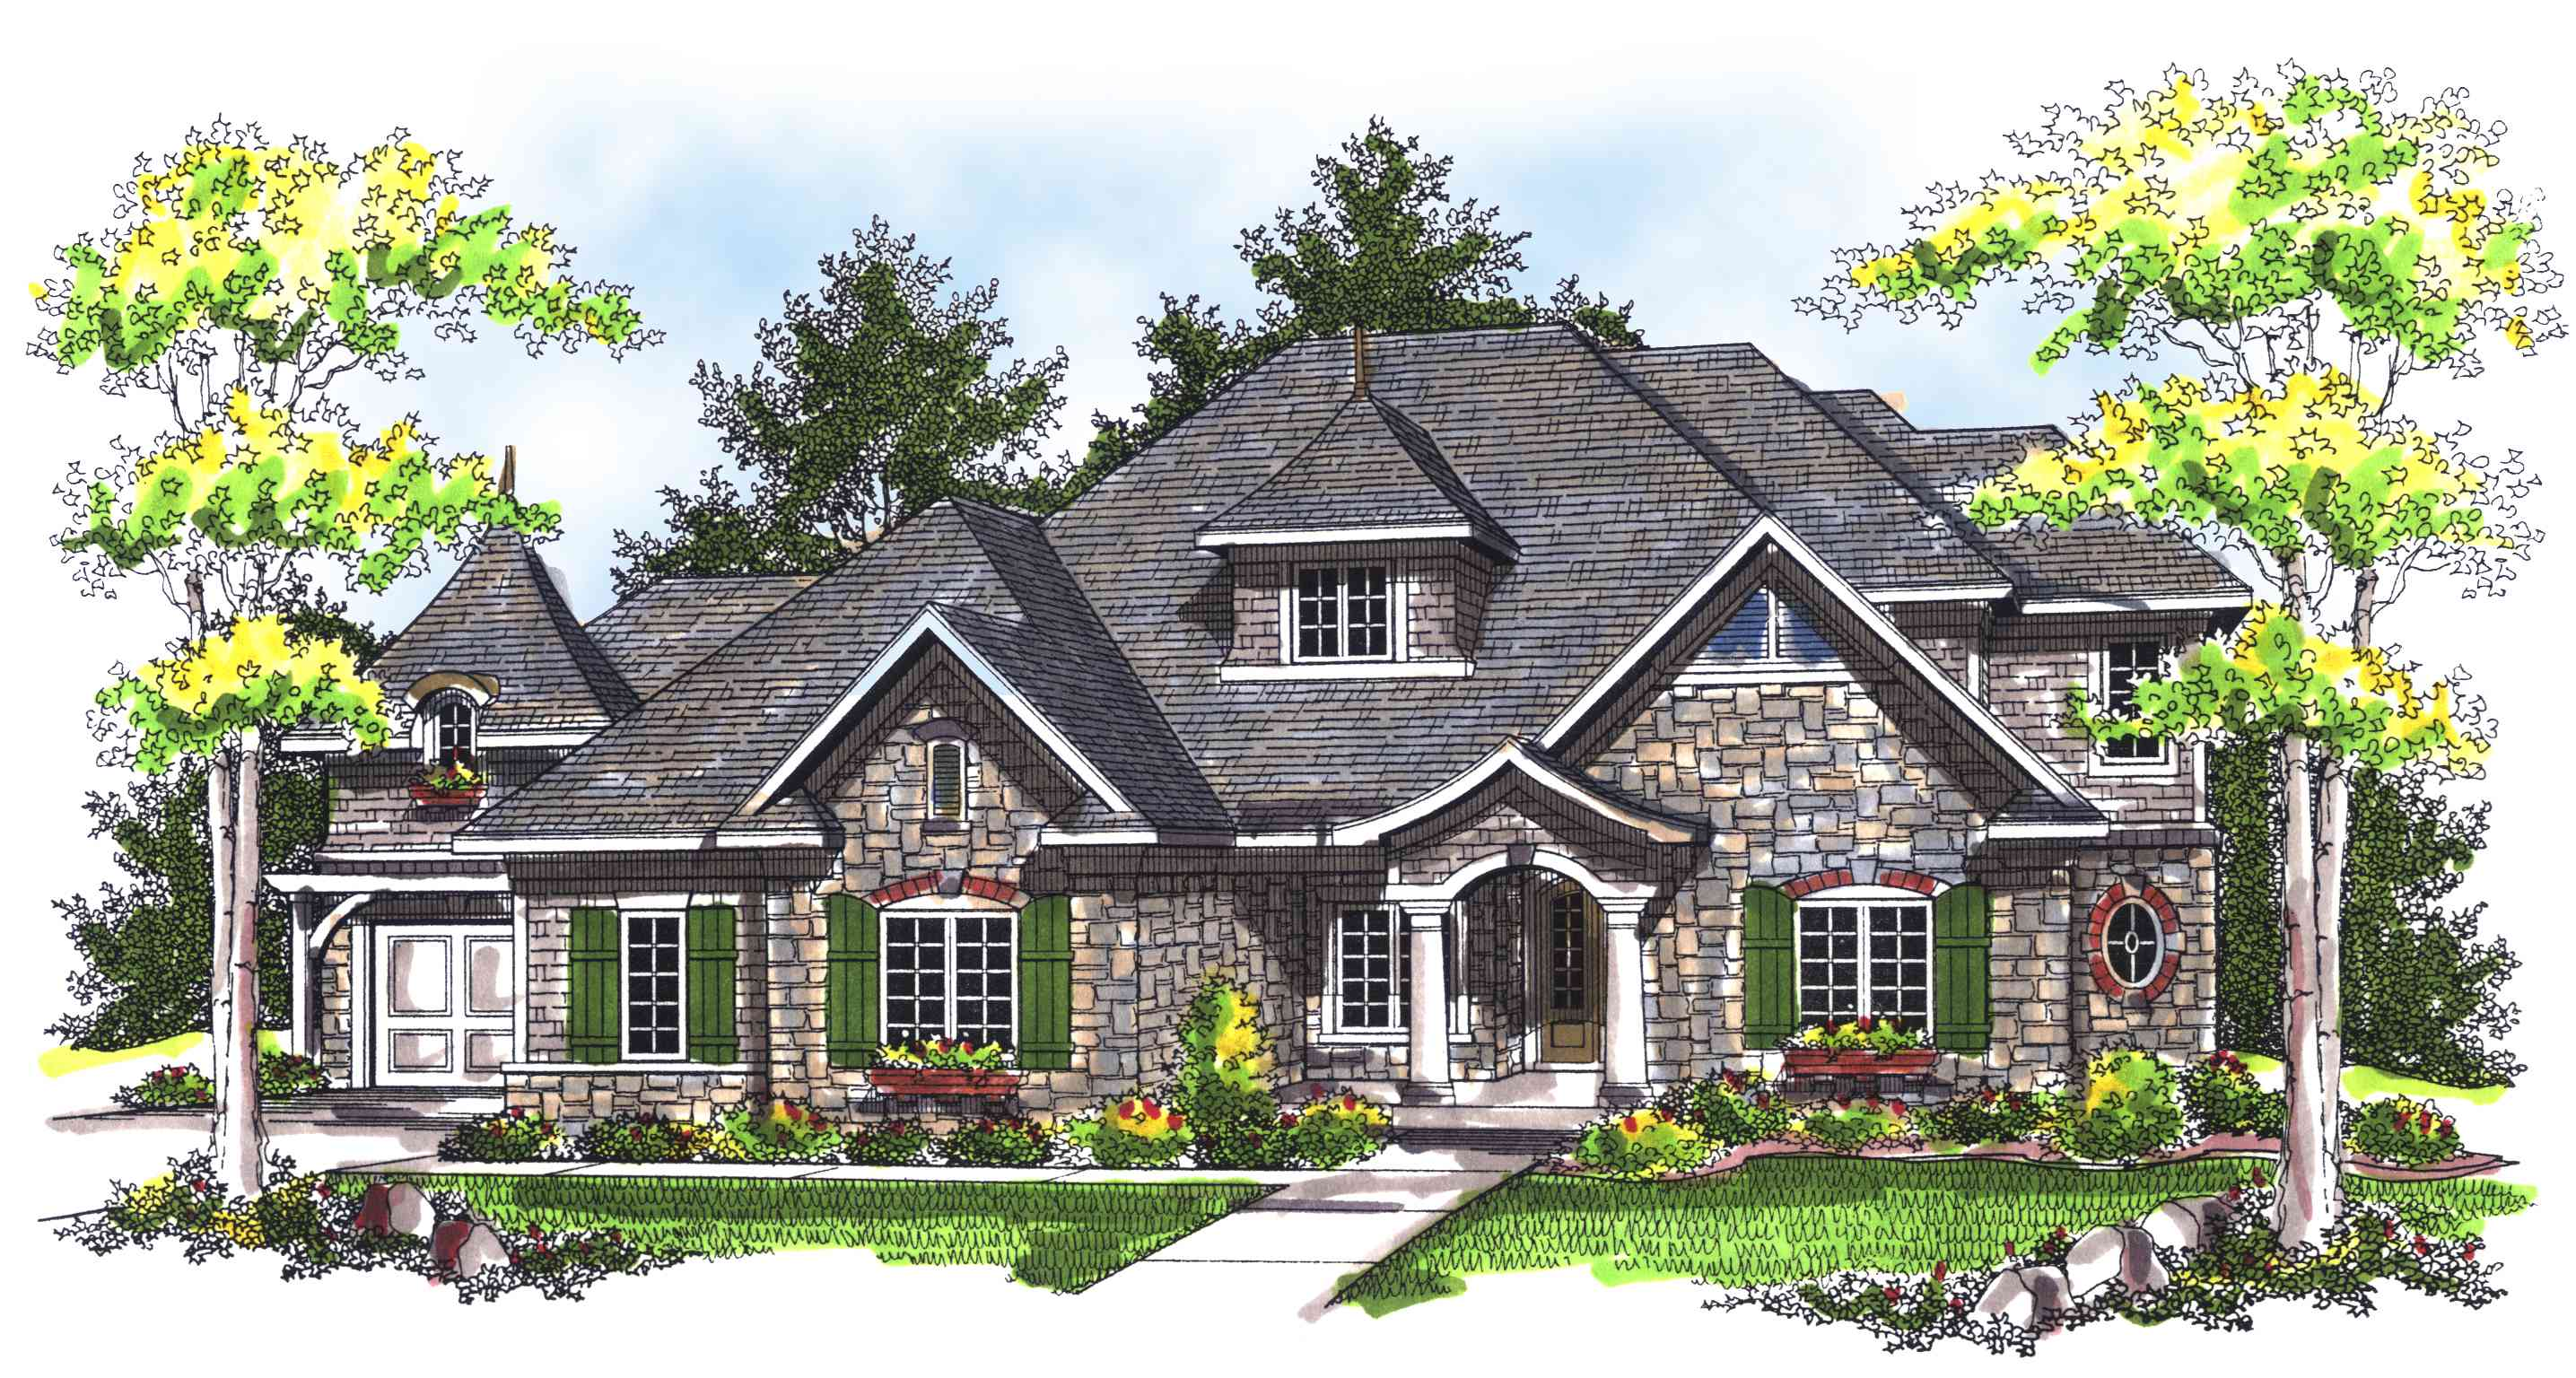 Chateau style home plan 89256ah architectural designs for Chateau style house plans